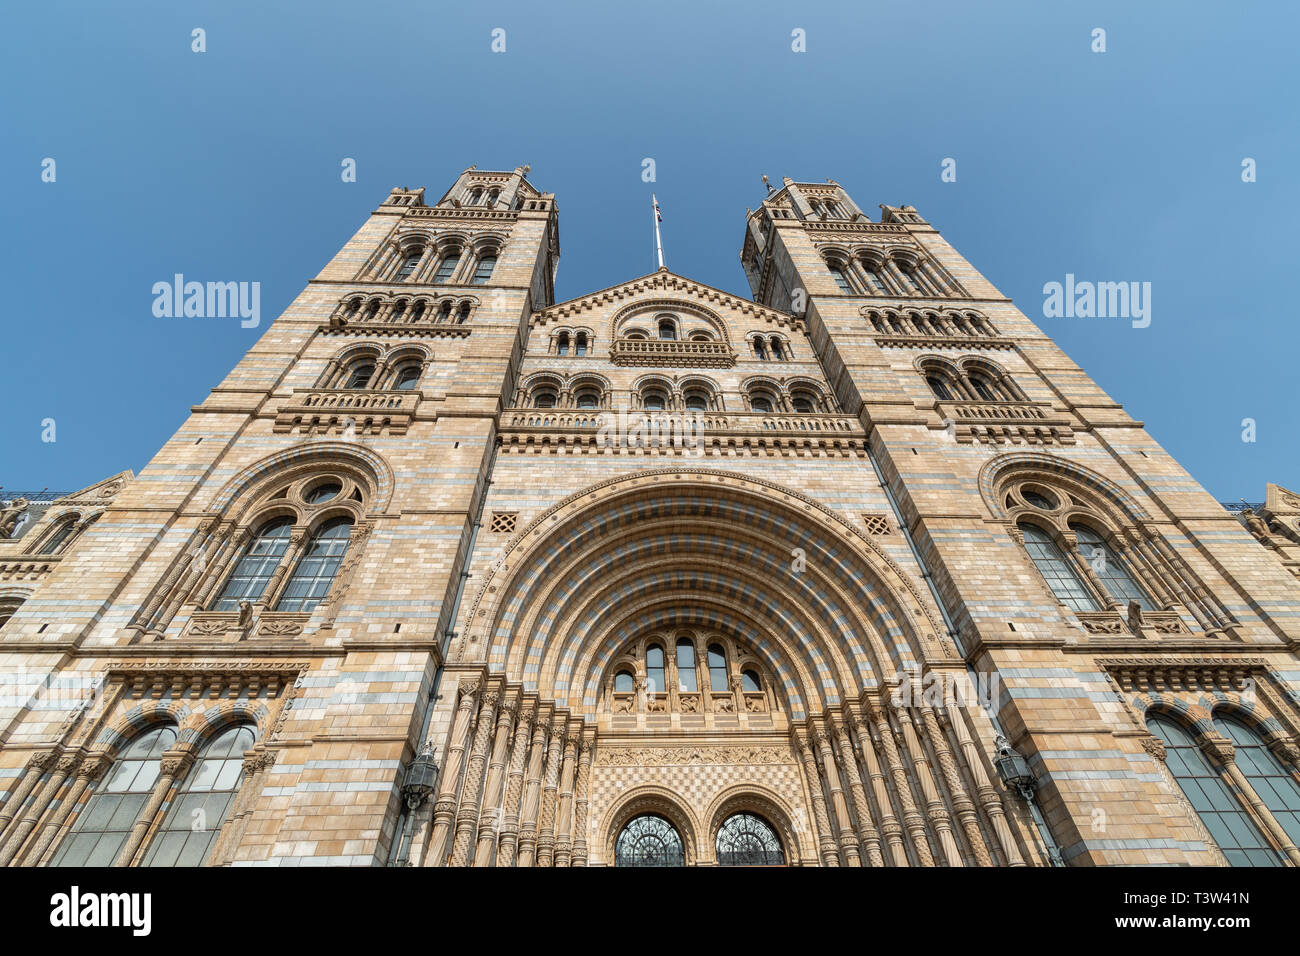 A wide view of the front of the Natural History Museum in London on a bright day - Stock Image